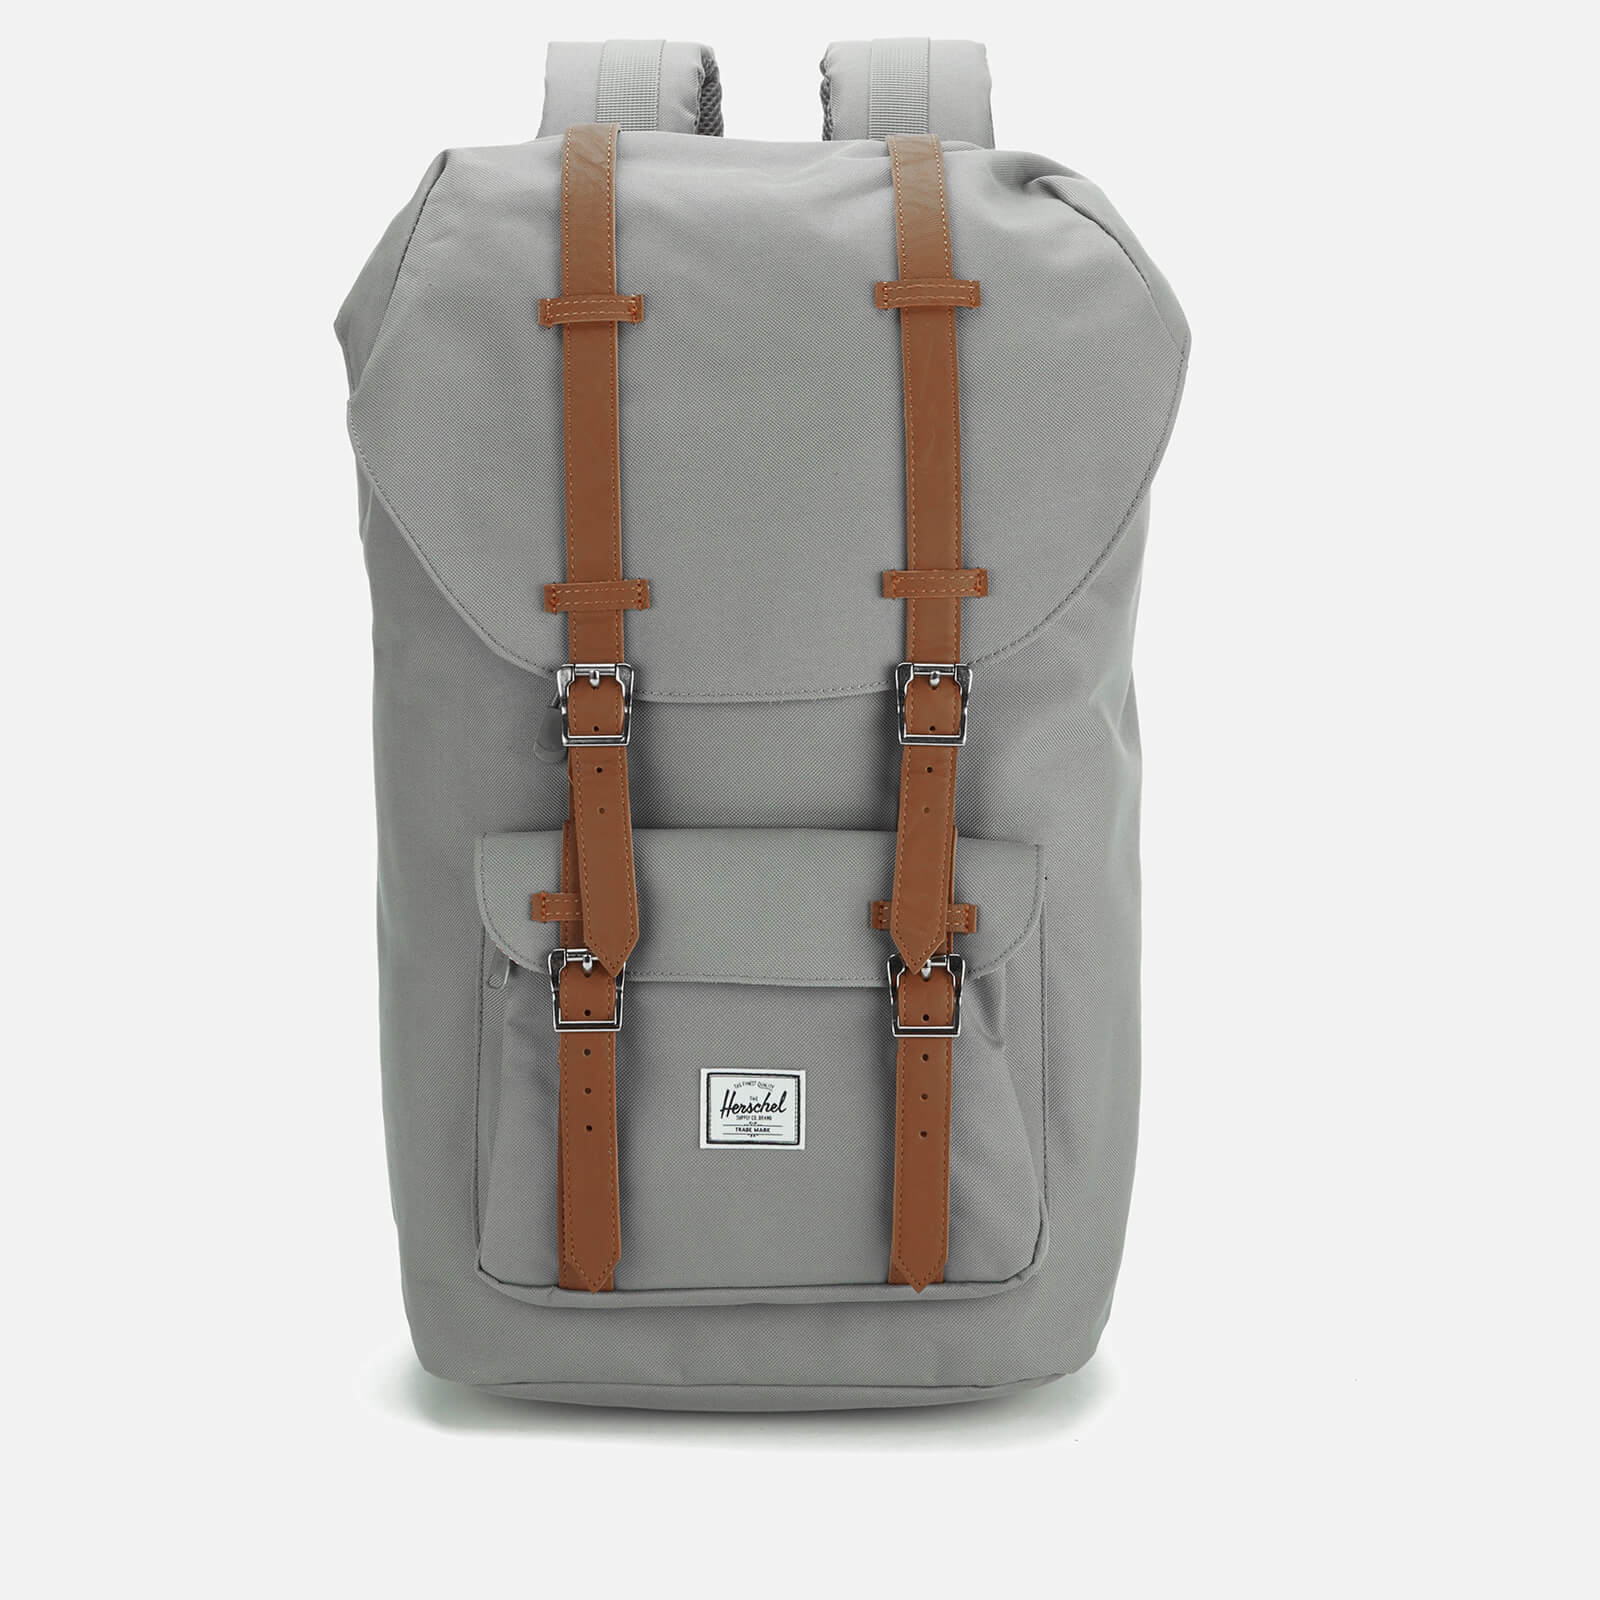 Click to view product details and reviews for Herschel Supply Co Little America Backpack Grey Tan Synthetic Leather.